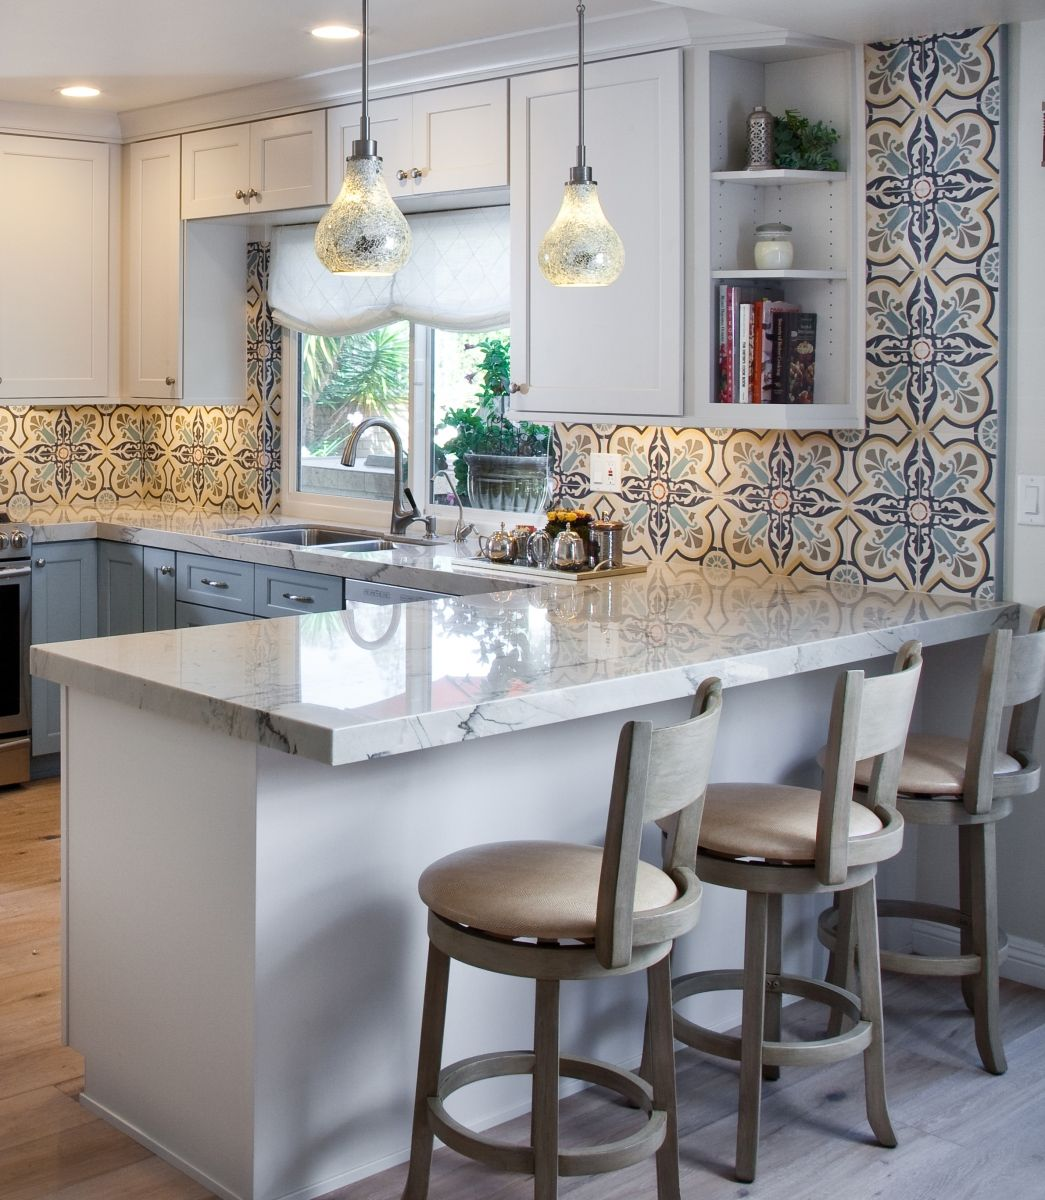 10 Ways to Incorporate Your Personality Into Your Kitchen Design